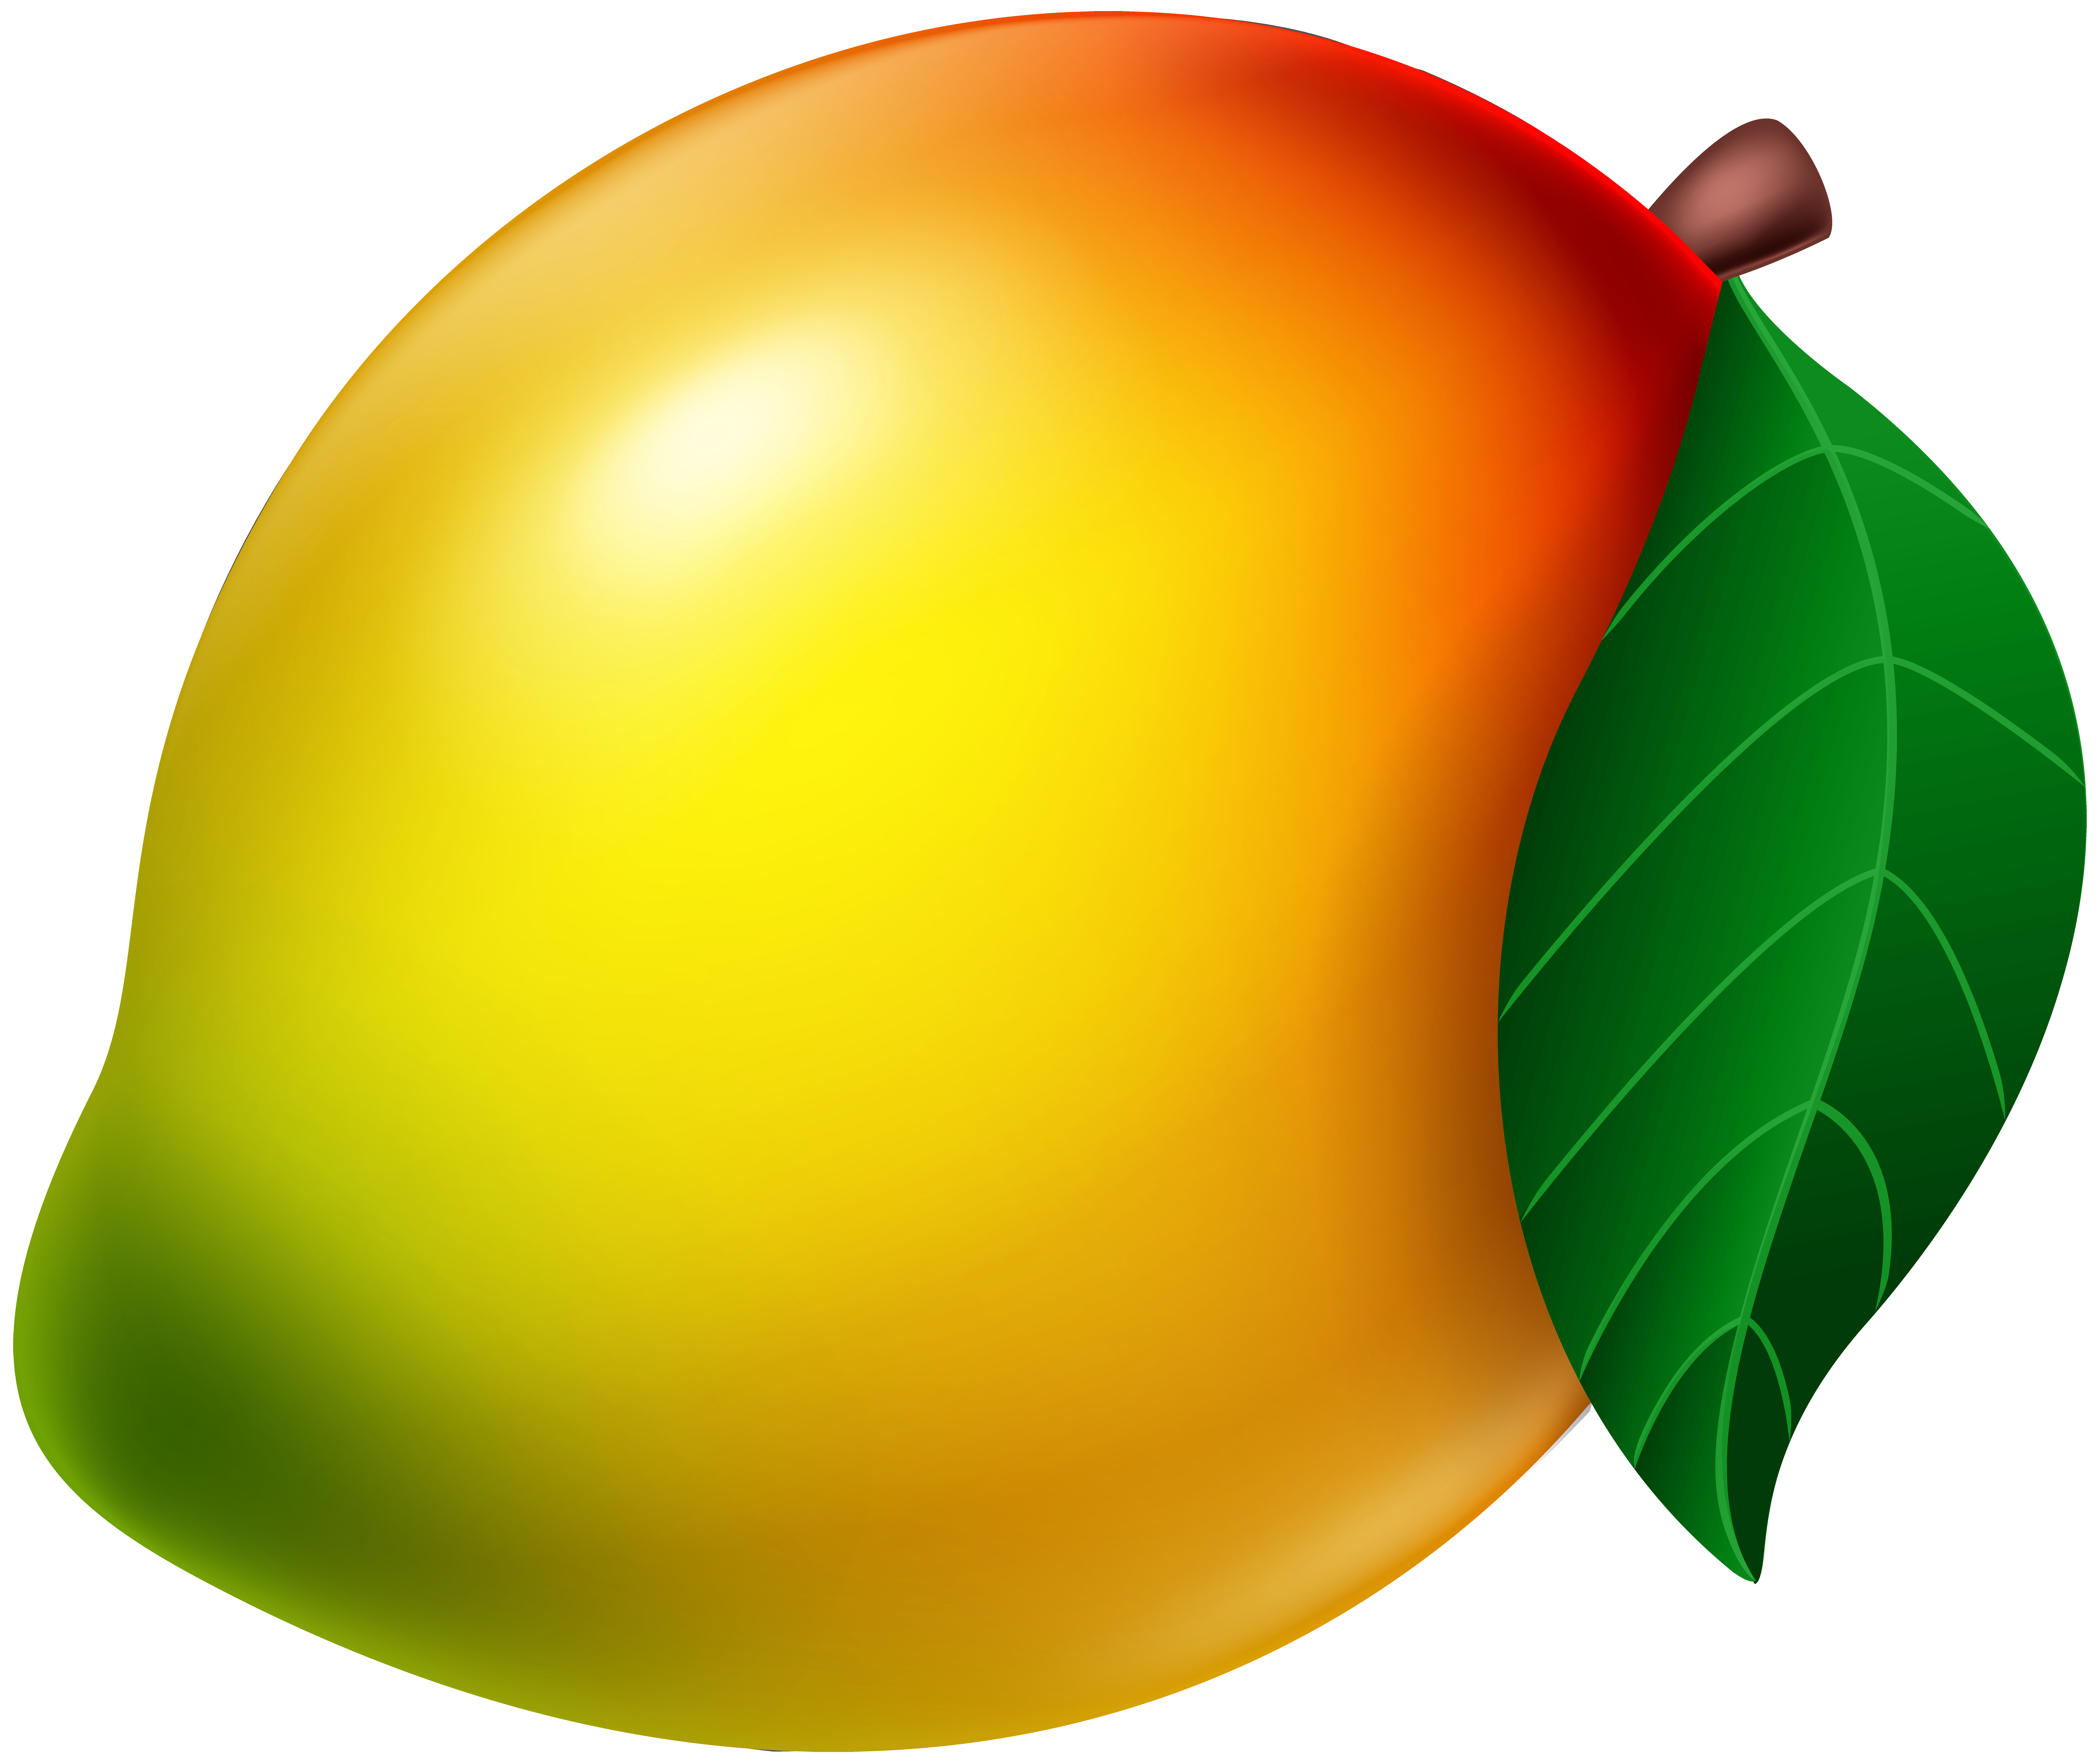 Mango clipart for.